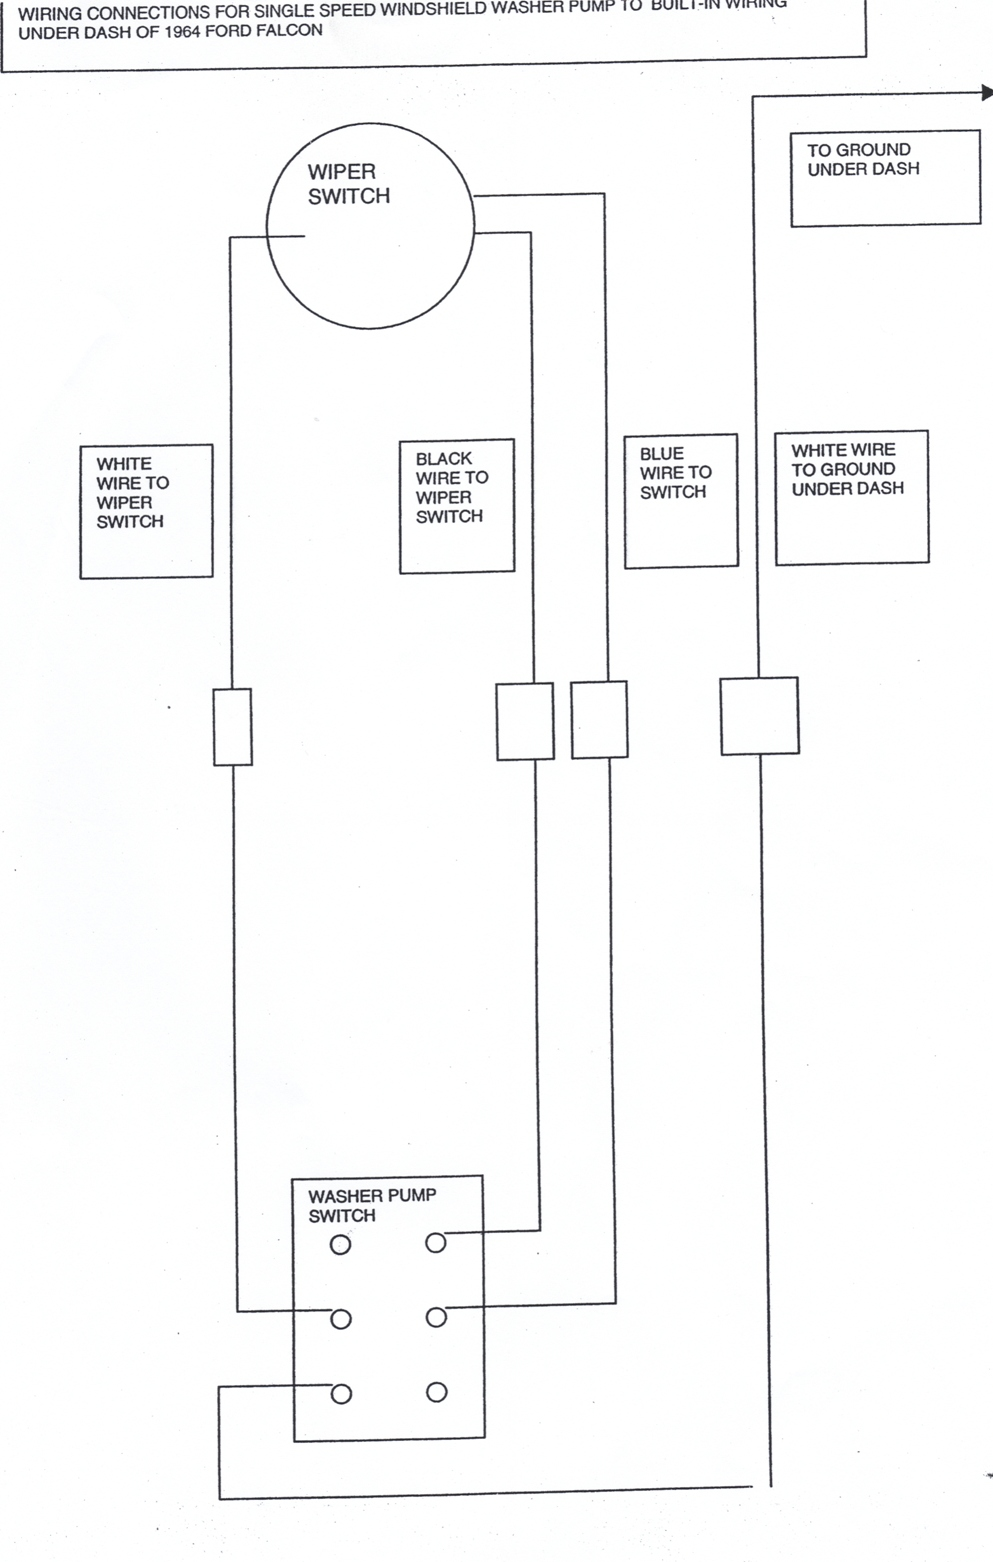 1964 Falcon Wiring Diagram Another Blog About 1965 El Camino Comet Ford F100 Ignition Switch